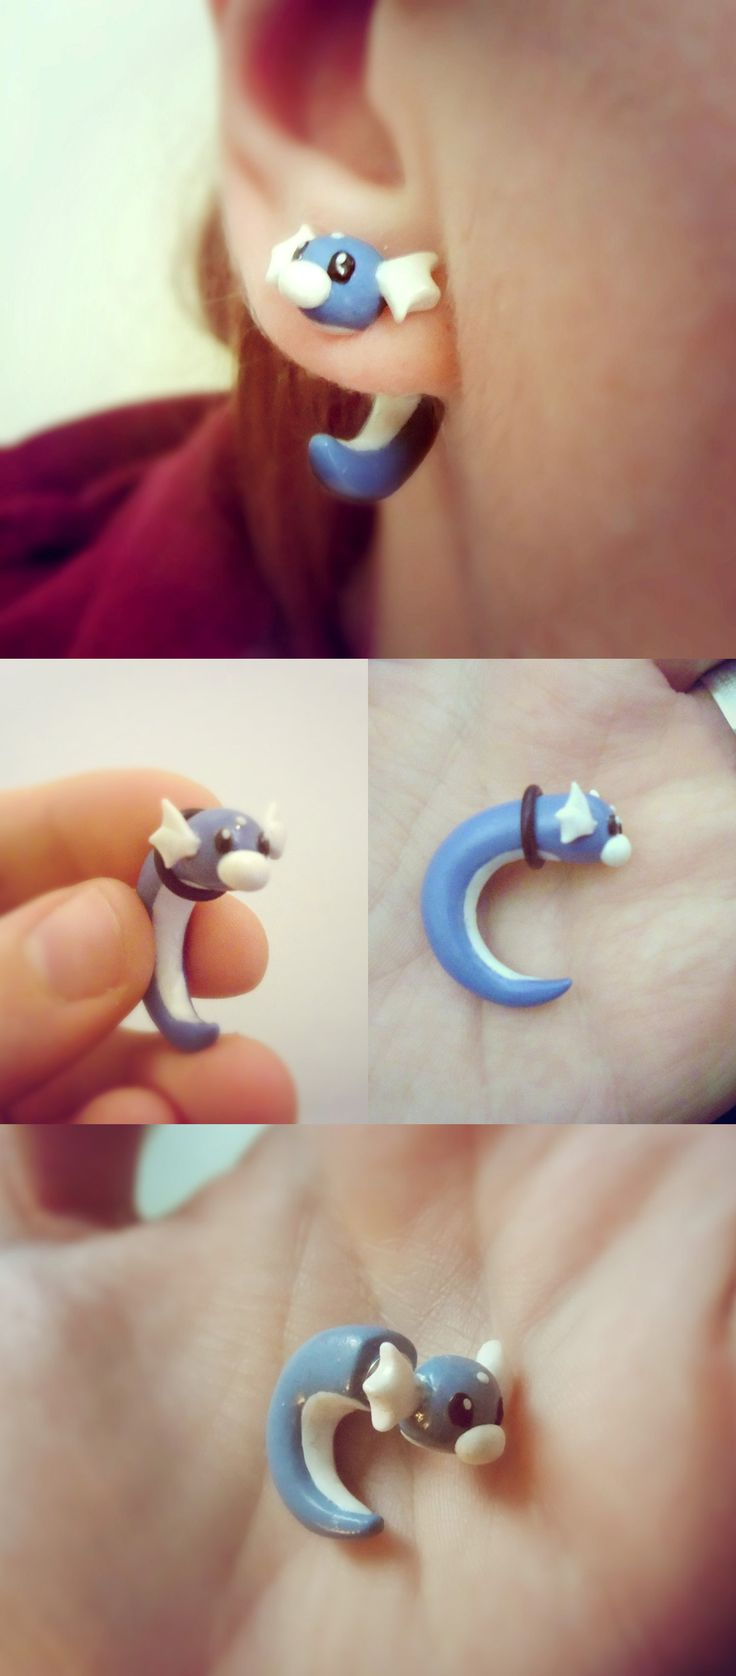 These adorable handmade Dratini plugs have been carefully crafted into shape to fit snug into your ear. Custom size orders can be made and fake gauges are also available for those who want the stretched look without the pain. #pokemon